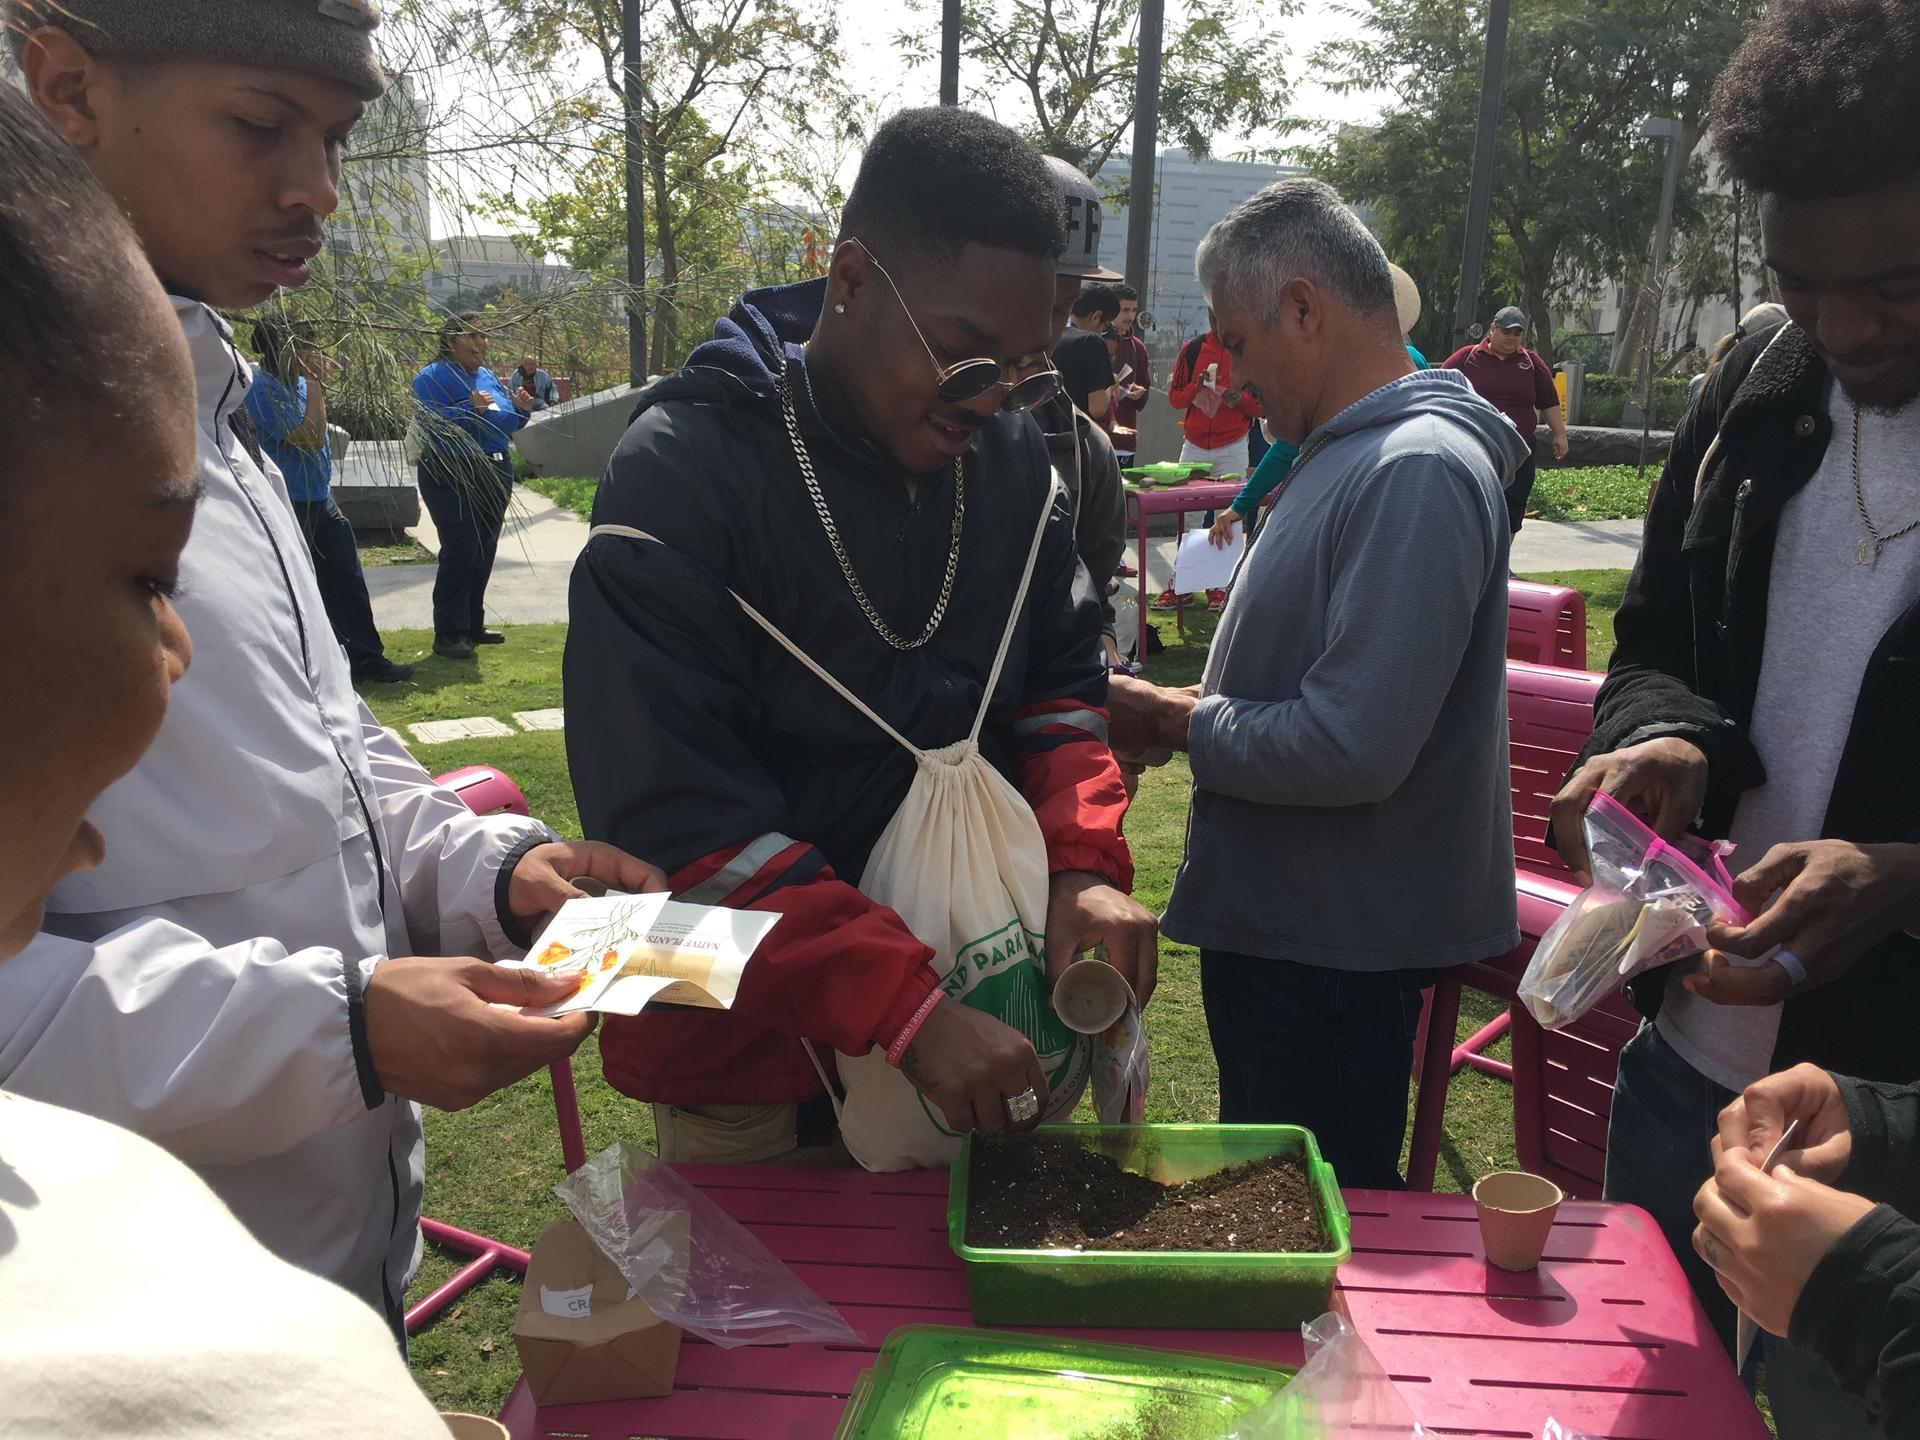 Palmdale students do an activity at Grand Park